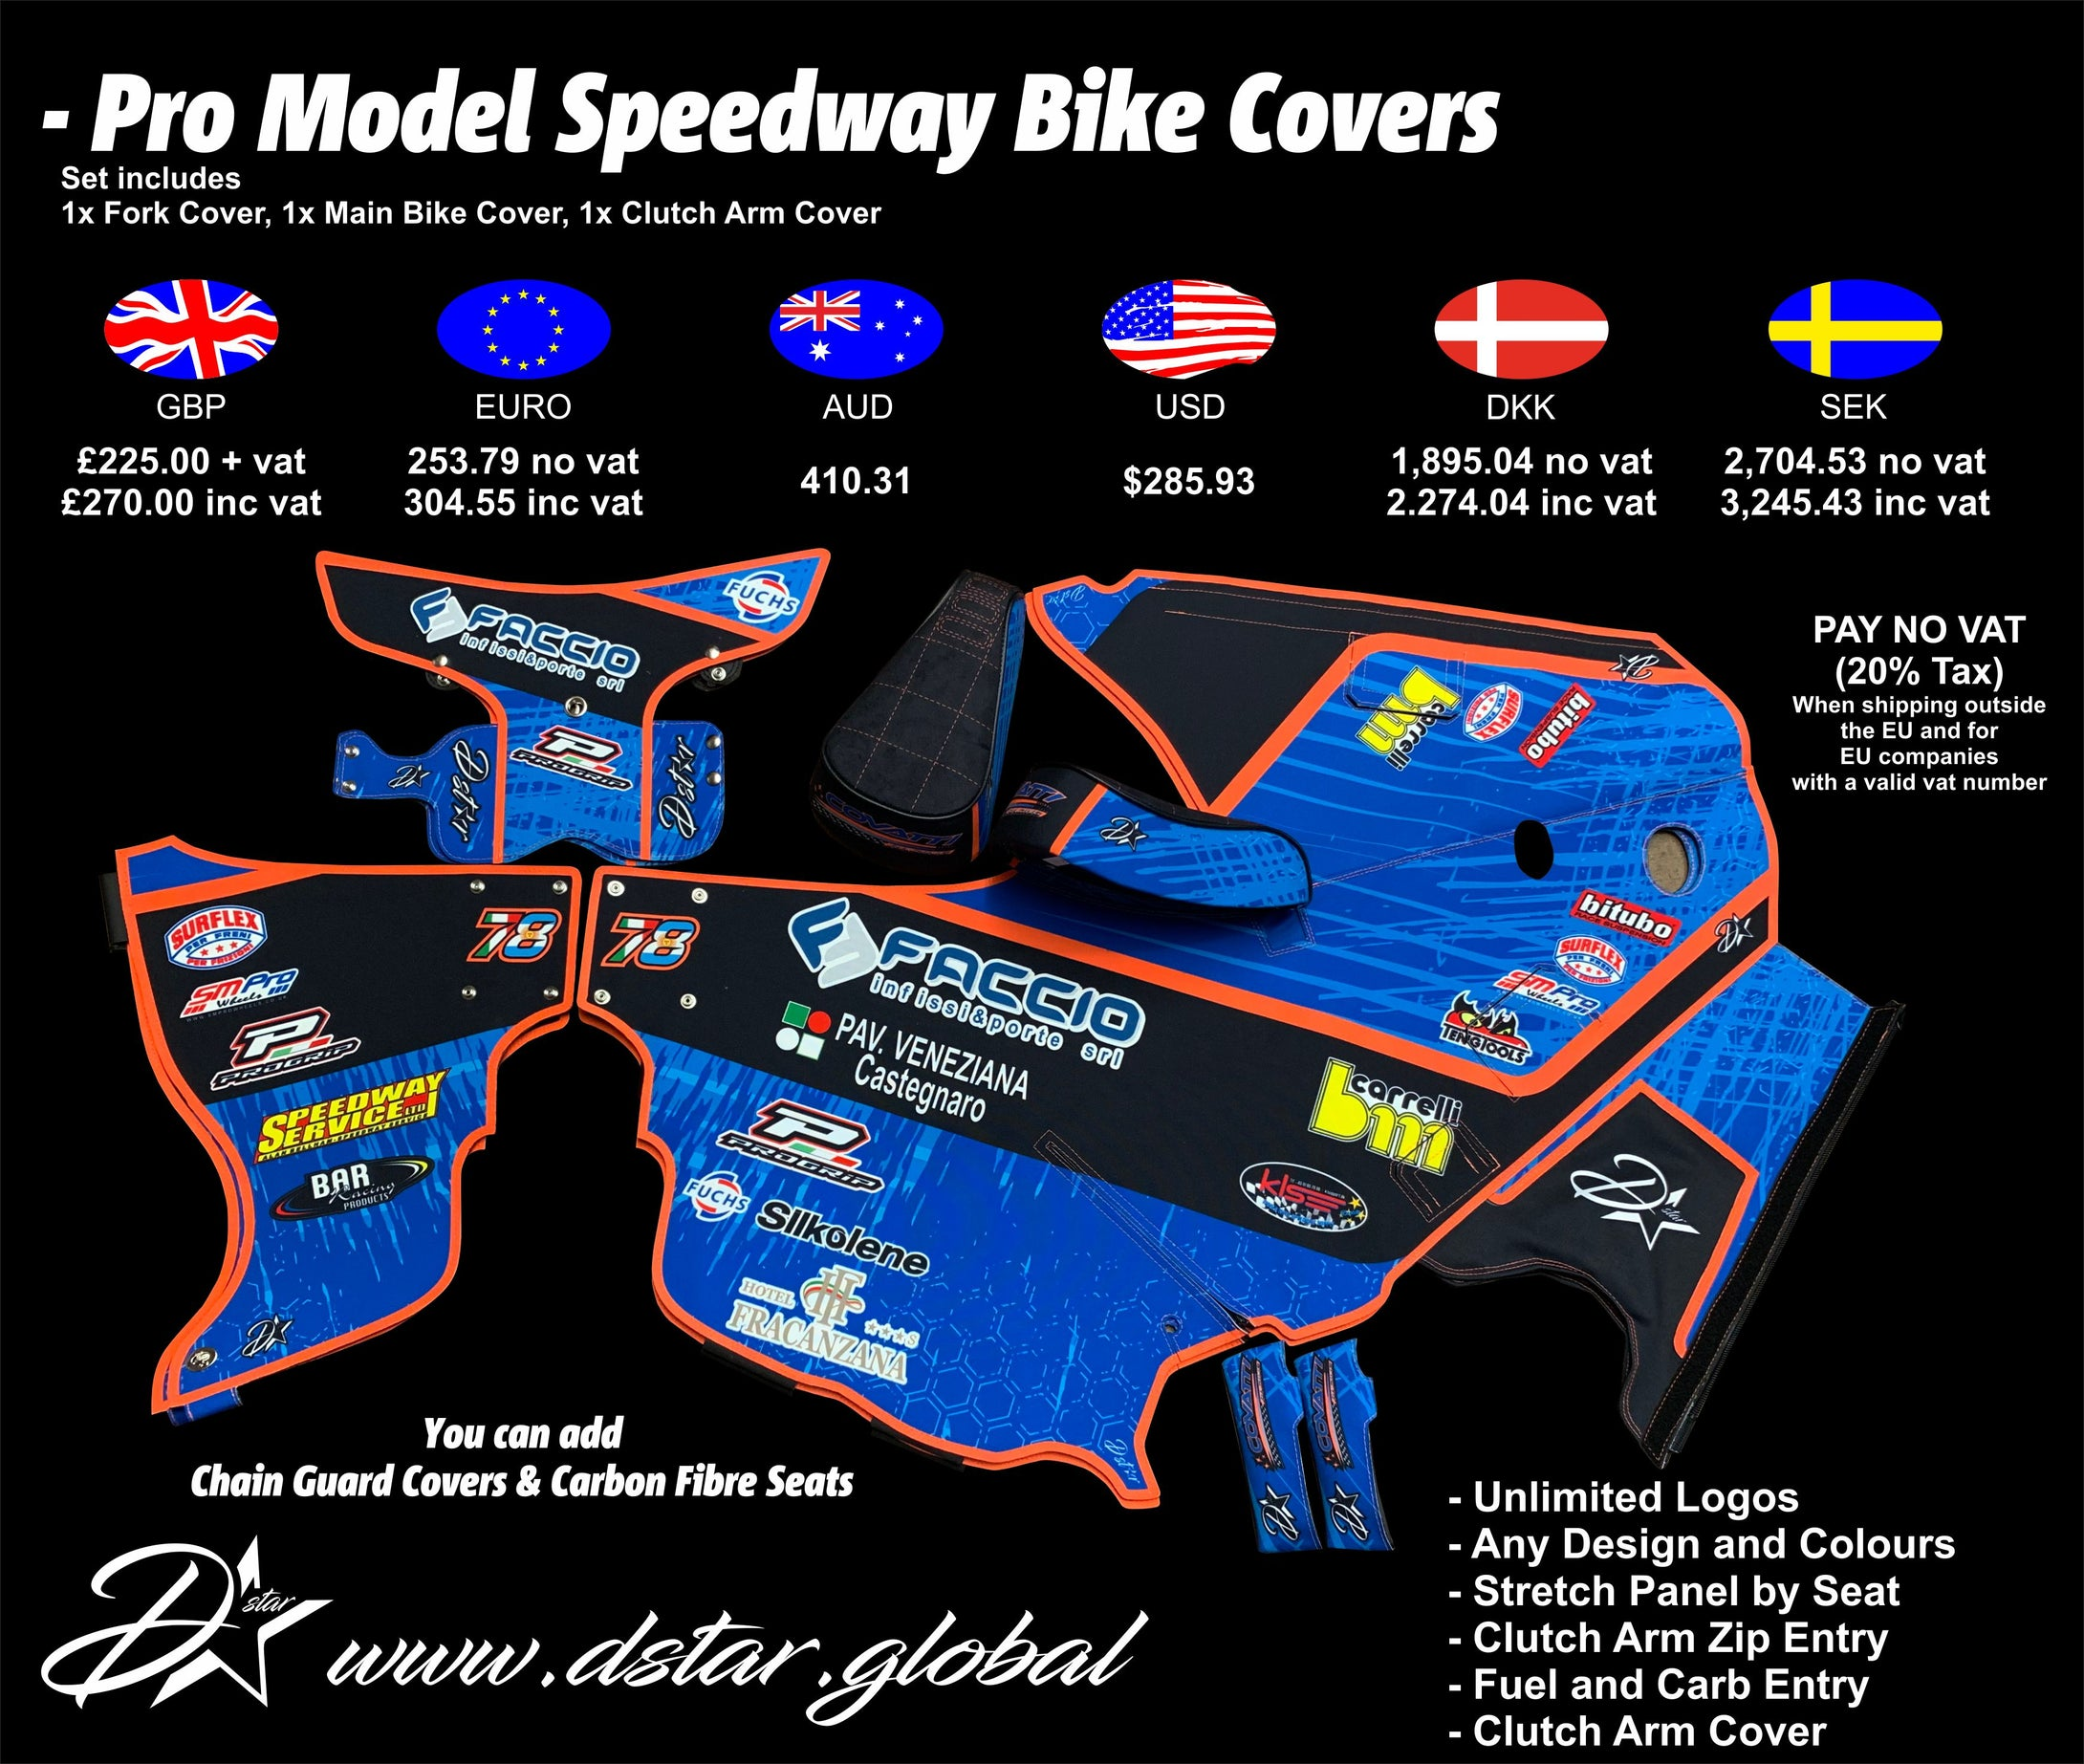 Speedway Motorcycle Bike covers - chapel zuzel